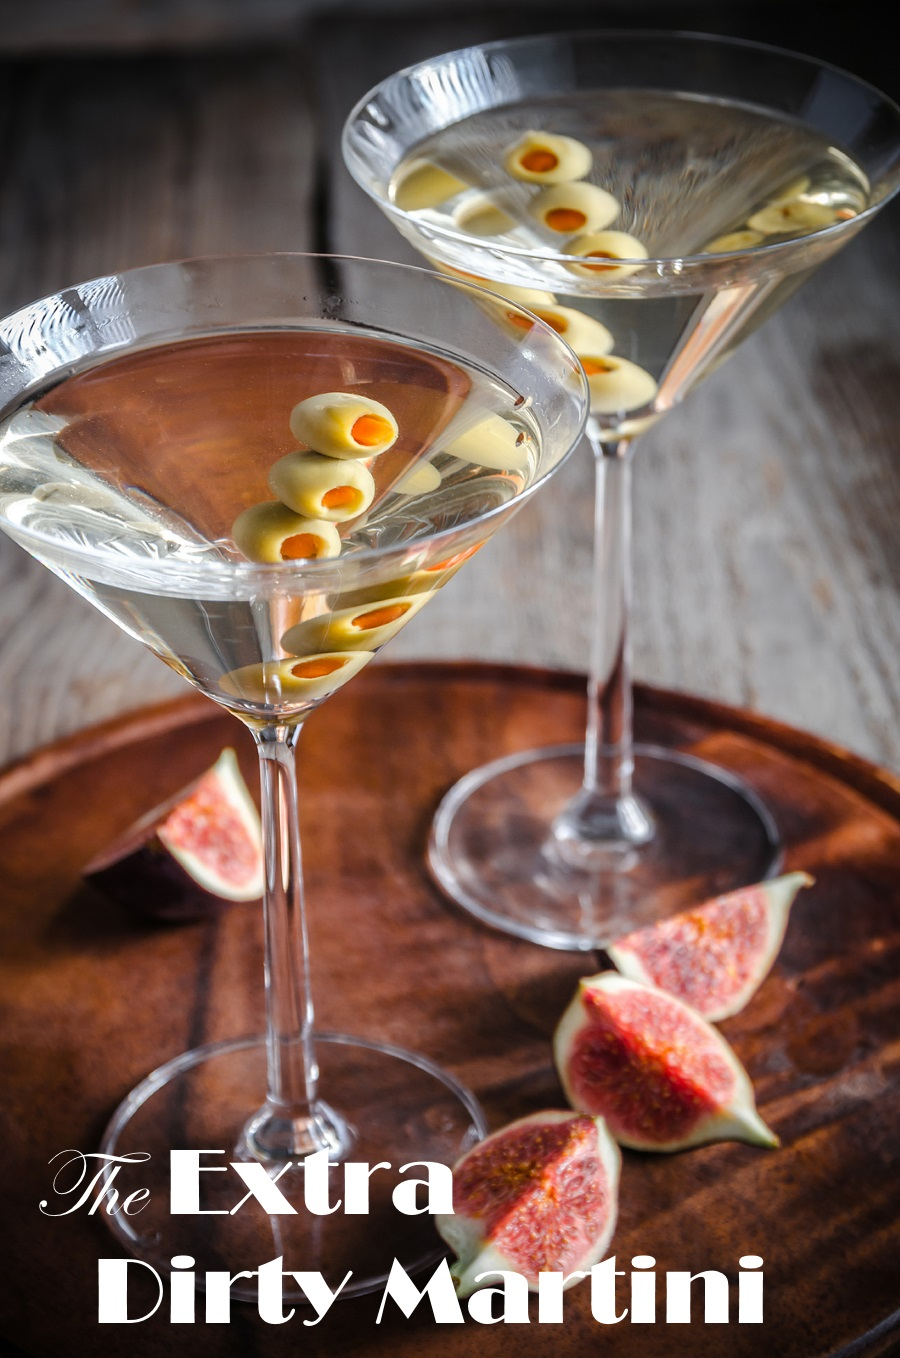 Dirty) Tale of Woe... And an Extra Dirty Martini Recipe